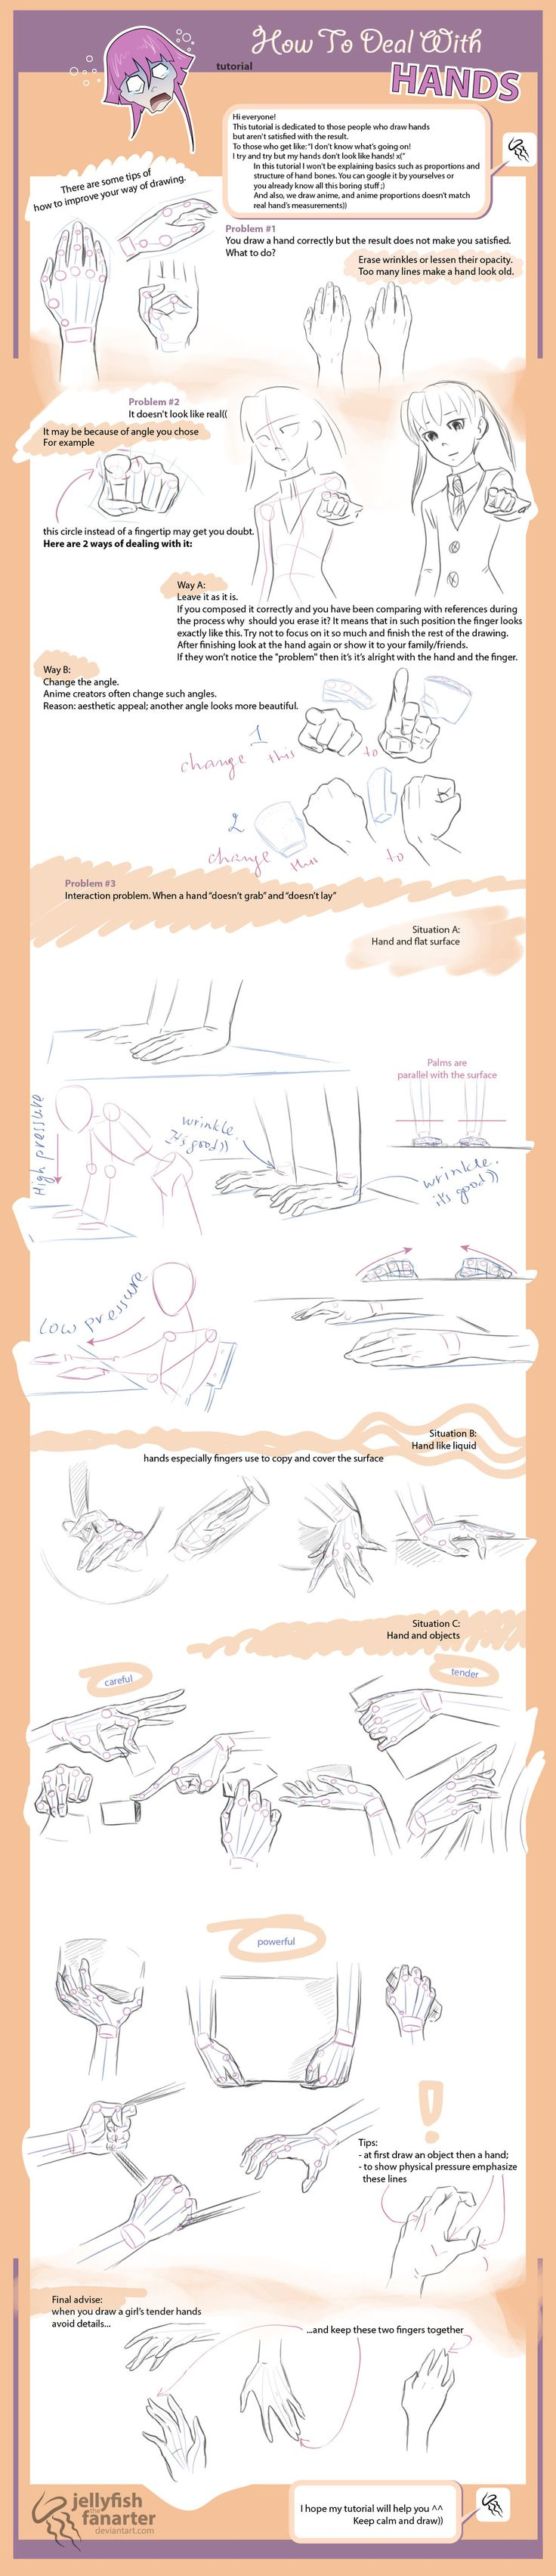 Manga Hands How To Deal With Hands  Tutorial